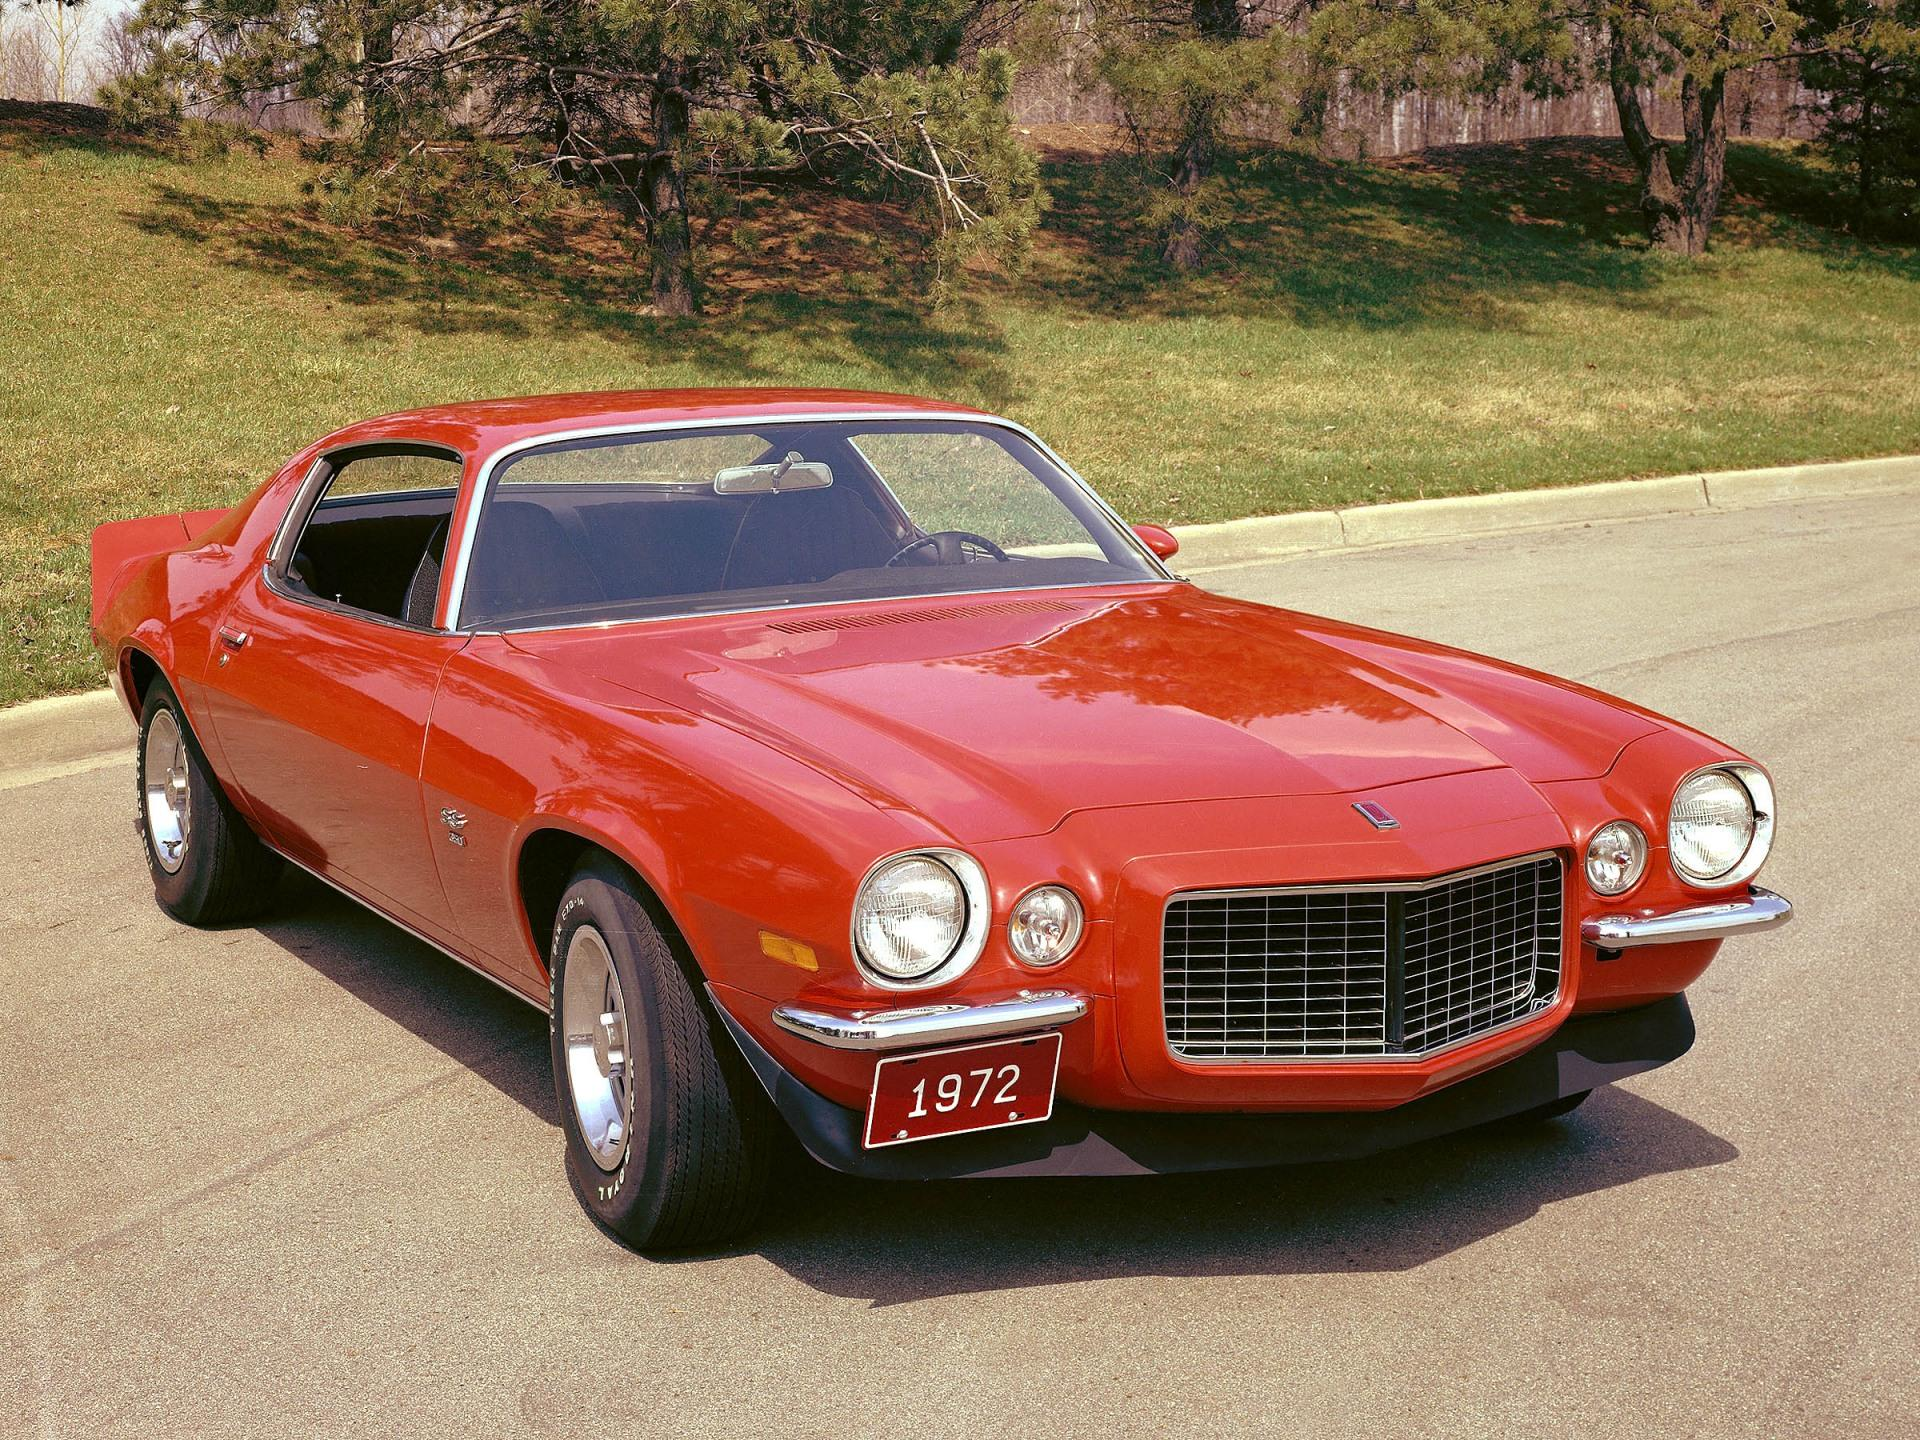 1972 Chevrolet Camaro Pictures History Value Research News Conceptcarz Com